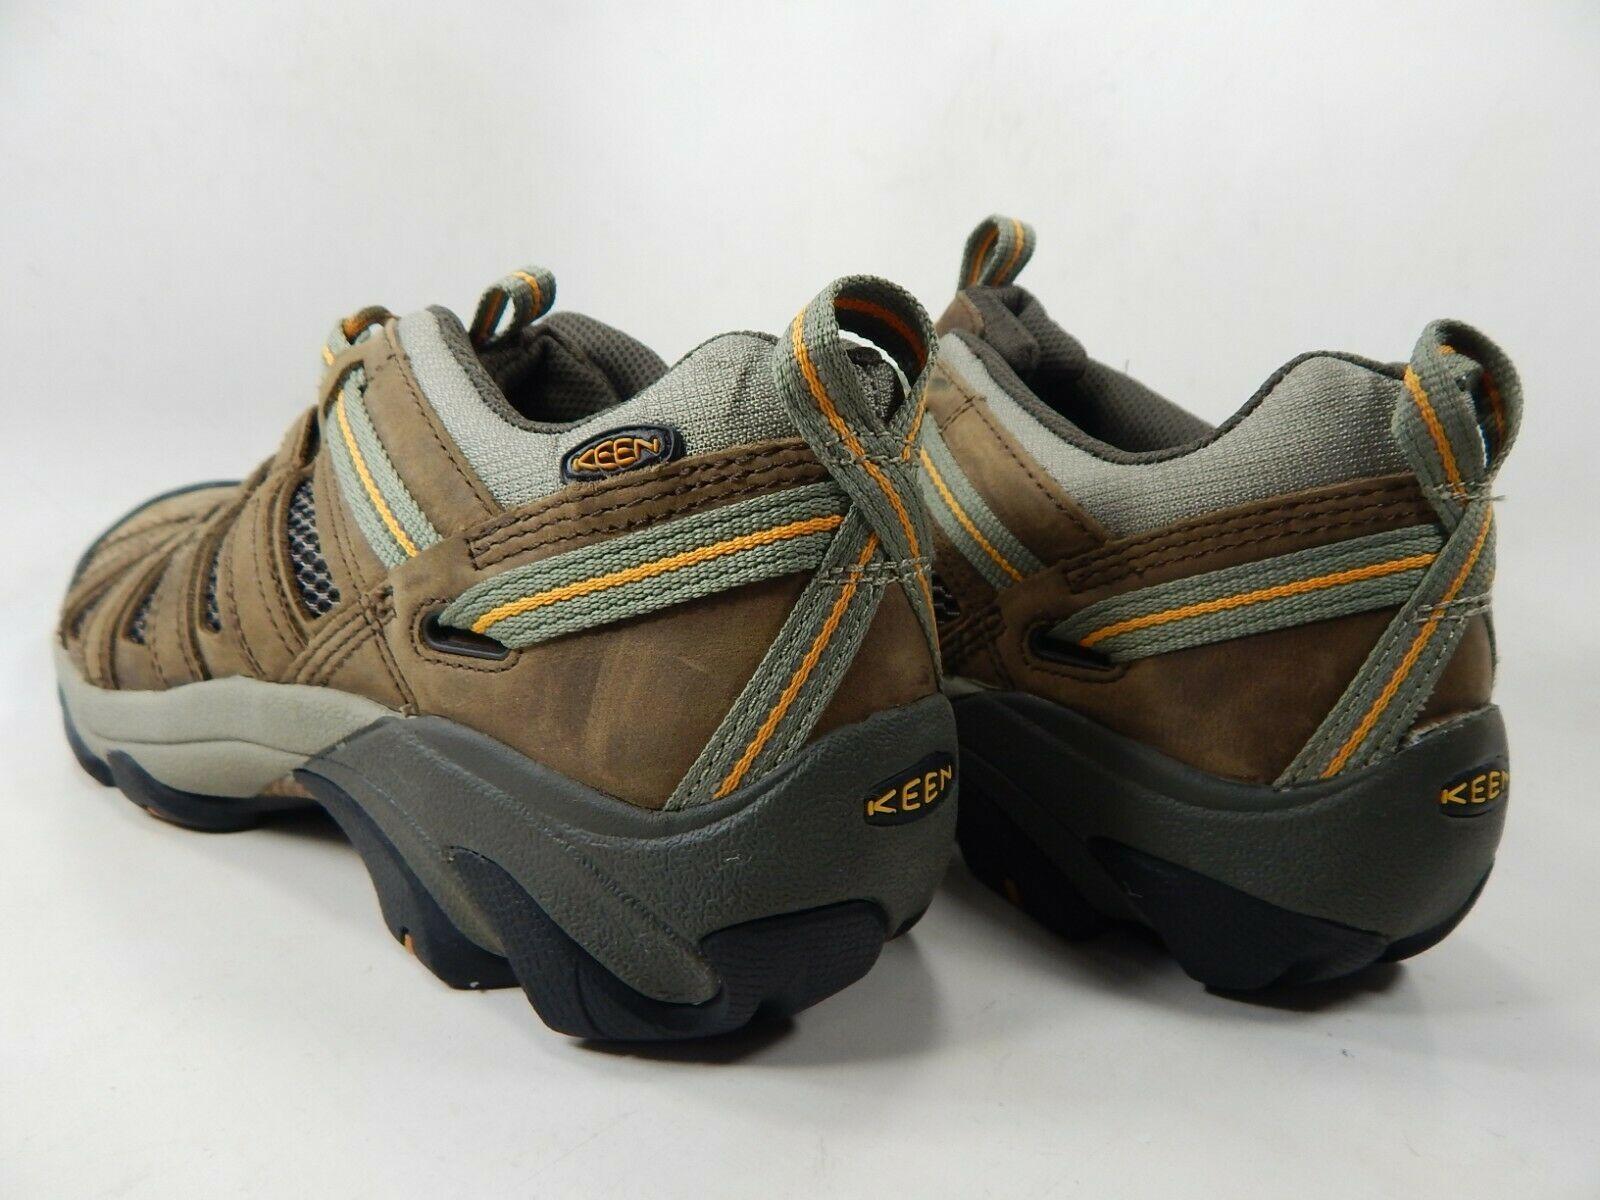 Keen Voyageur Low Top Size US 10.5 M (D) EU 44 Men's Trail Hiking Shoes Brown image 5